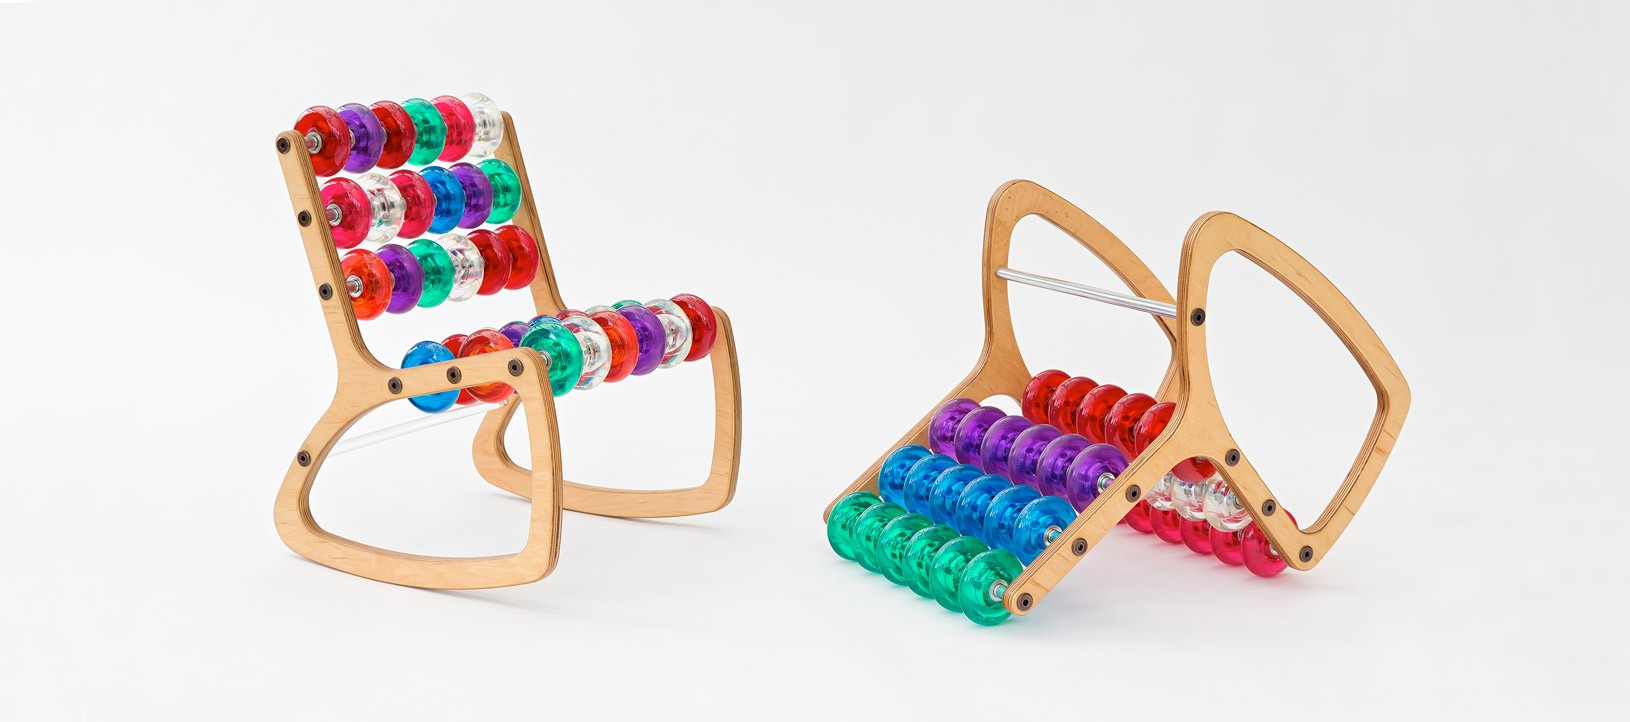 Razor Rocker children's therapy chair